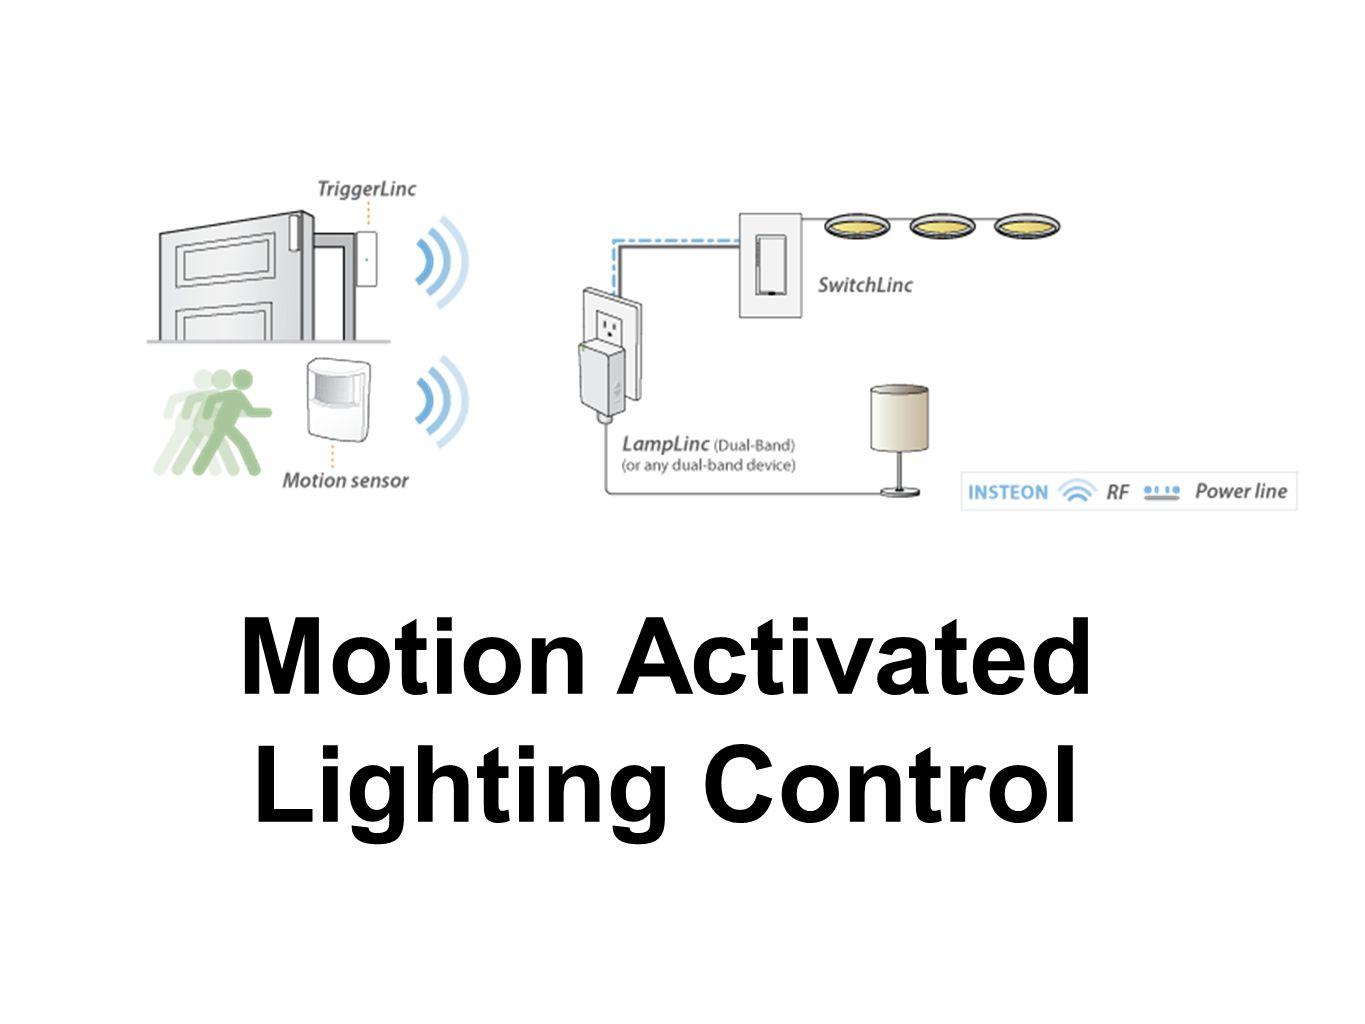 Motion Activated Lighting Control